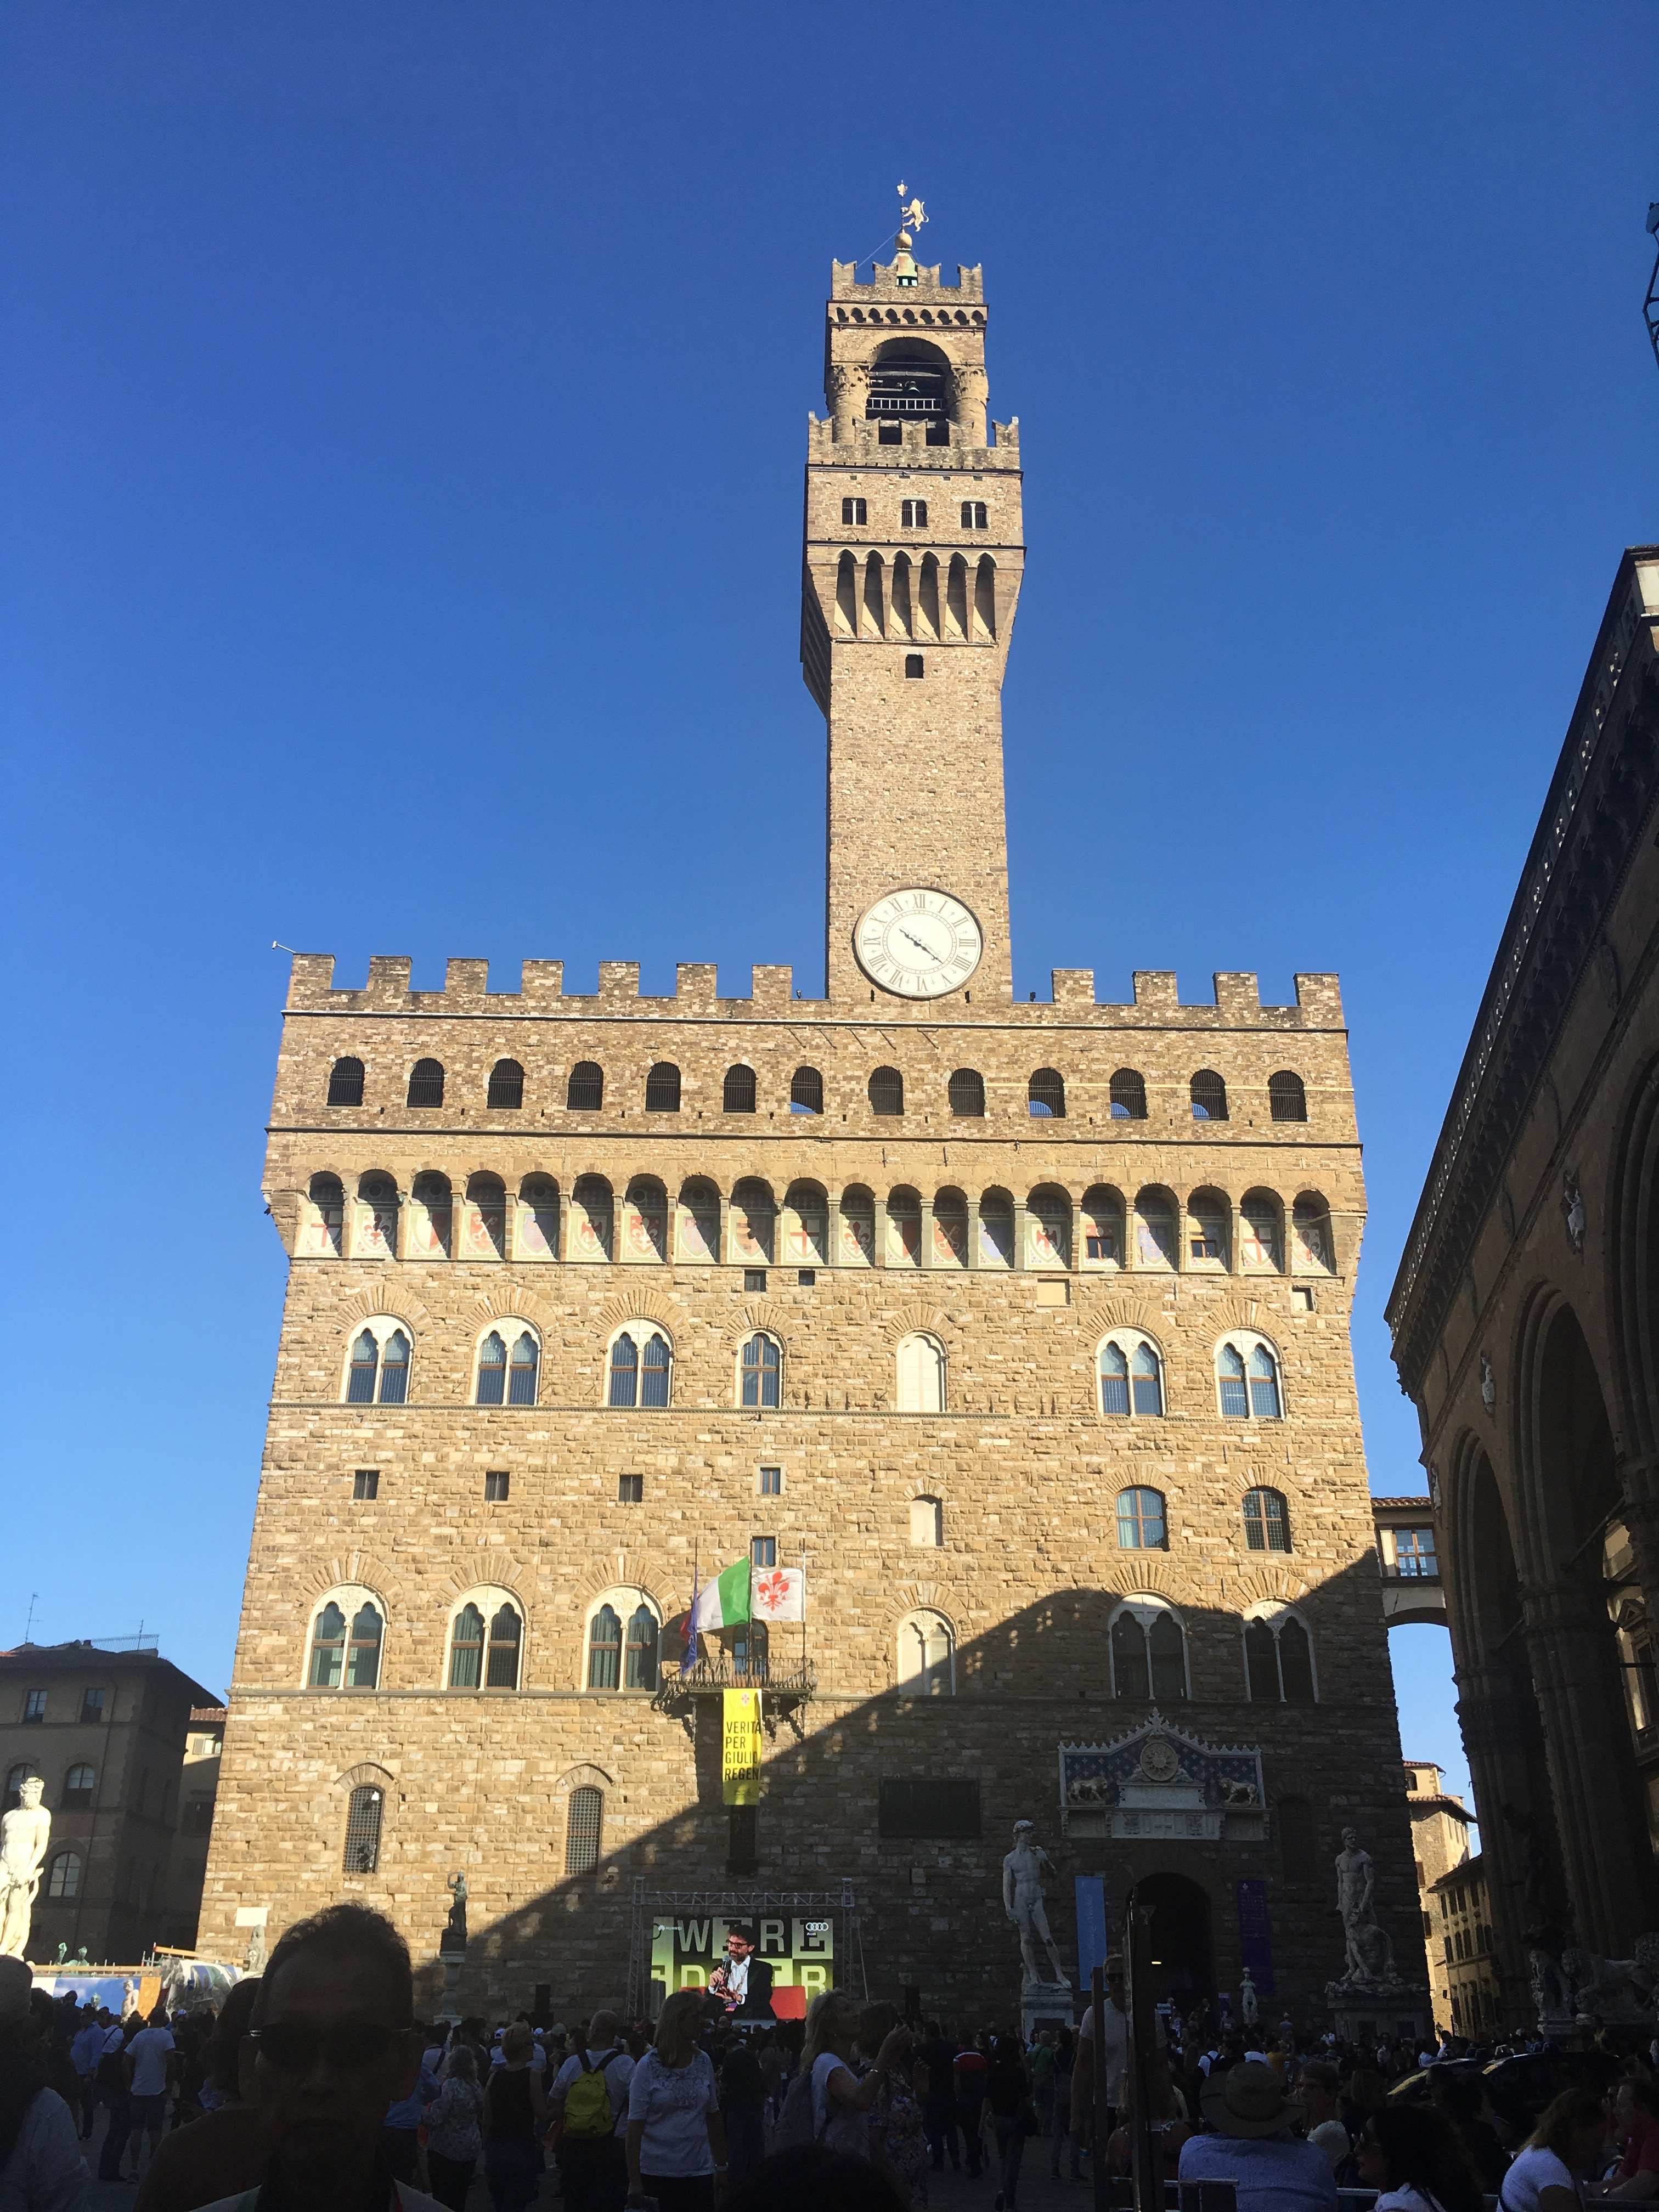 A picture of the Palazzo Vecchio. There are many people crowded in the area in front of it.